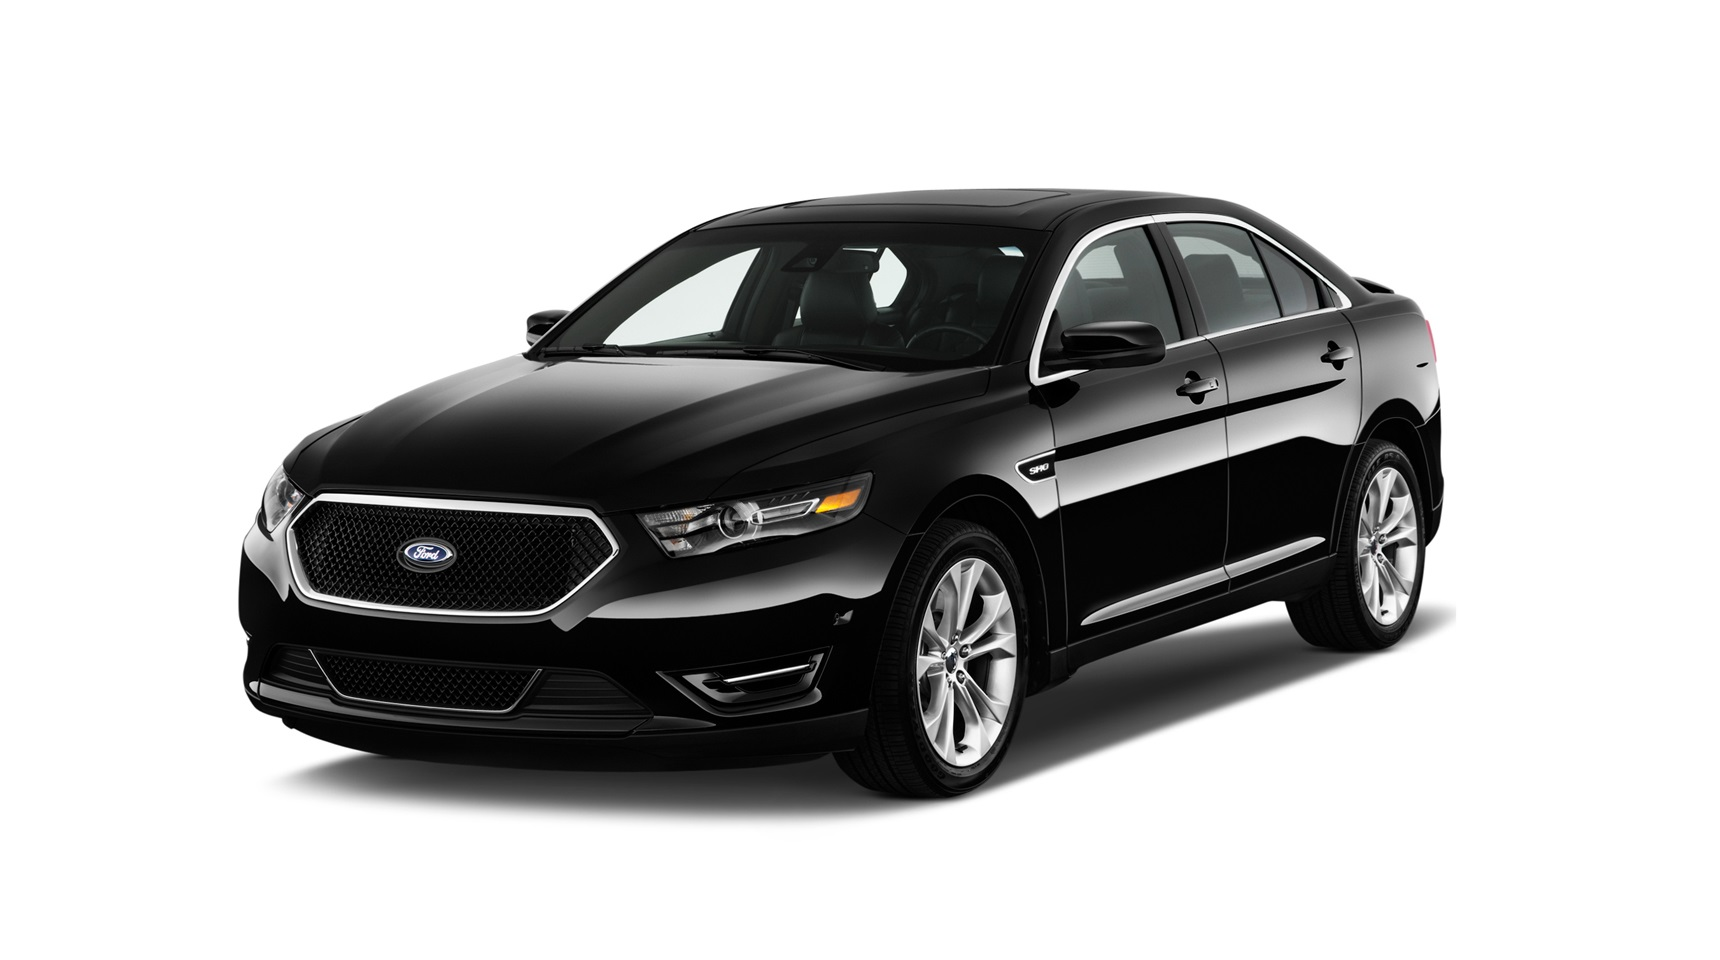 Ford Taurus 2019 3 5l V6 Sho In Saudi Arabia New Car Prices Specs Reviews Amp Photos Yallamotor